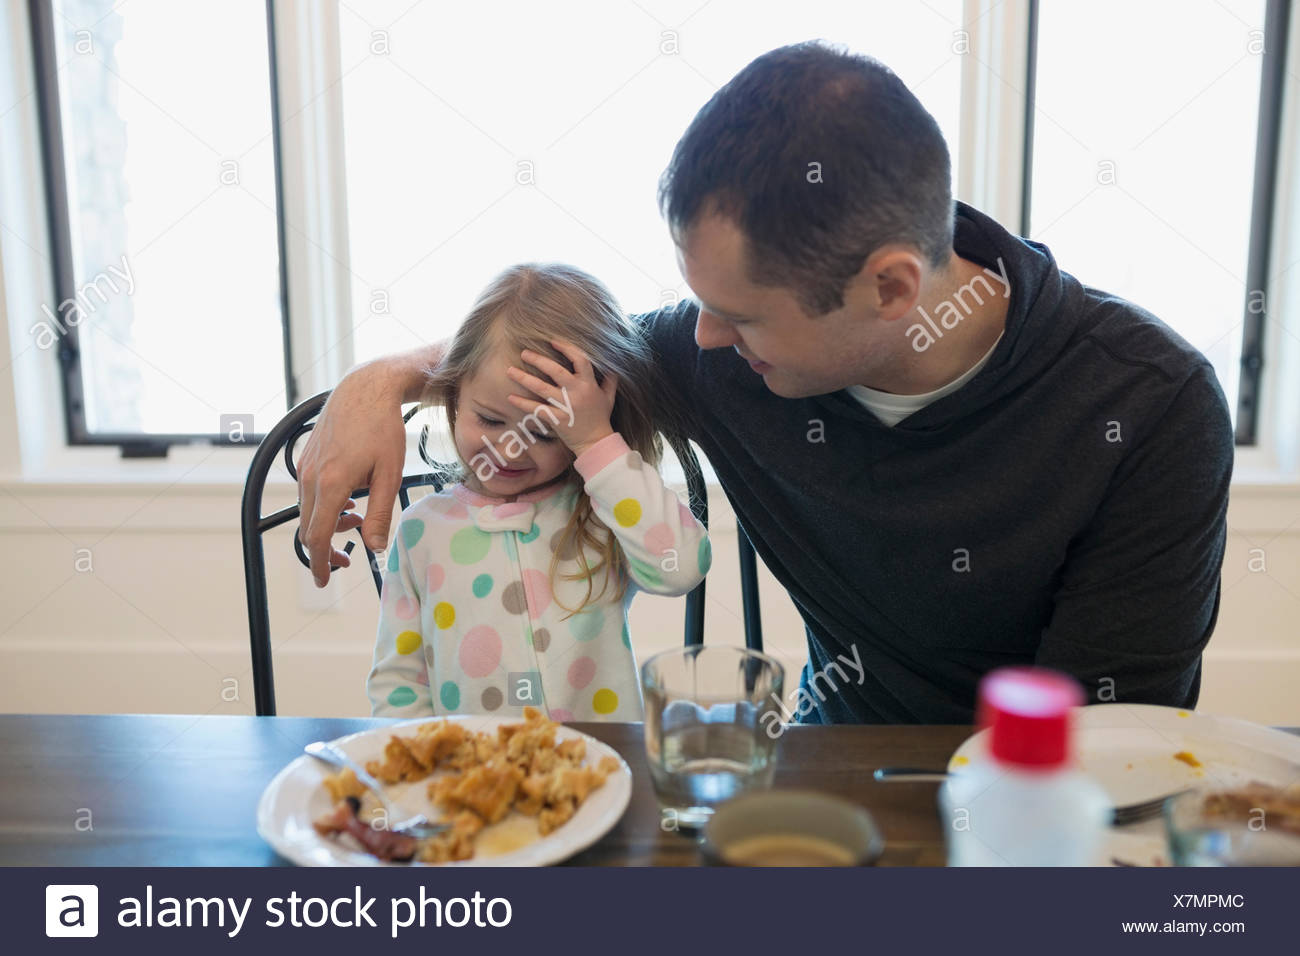 Father and daughter eating waffles at breakfast table - Stock Image